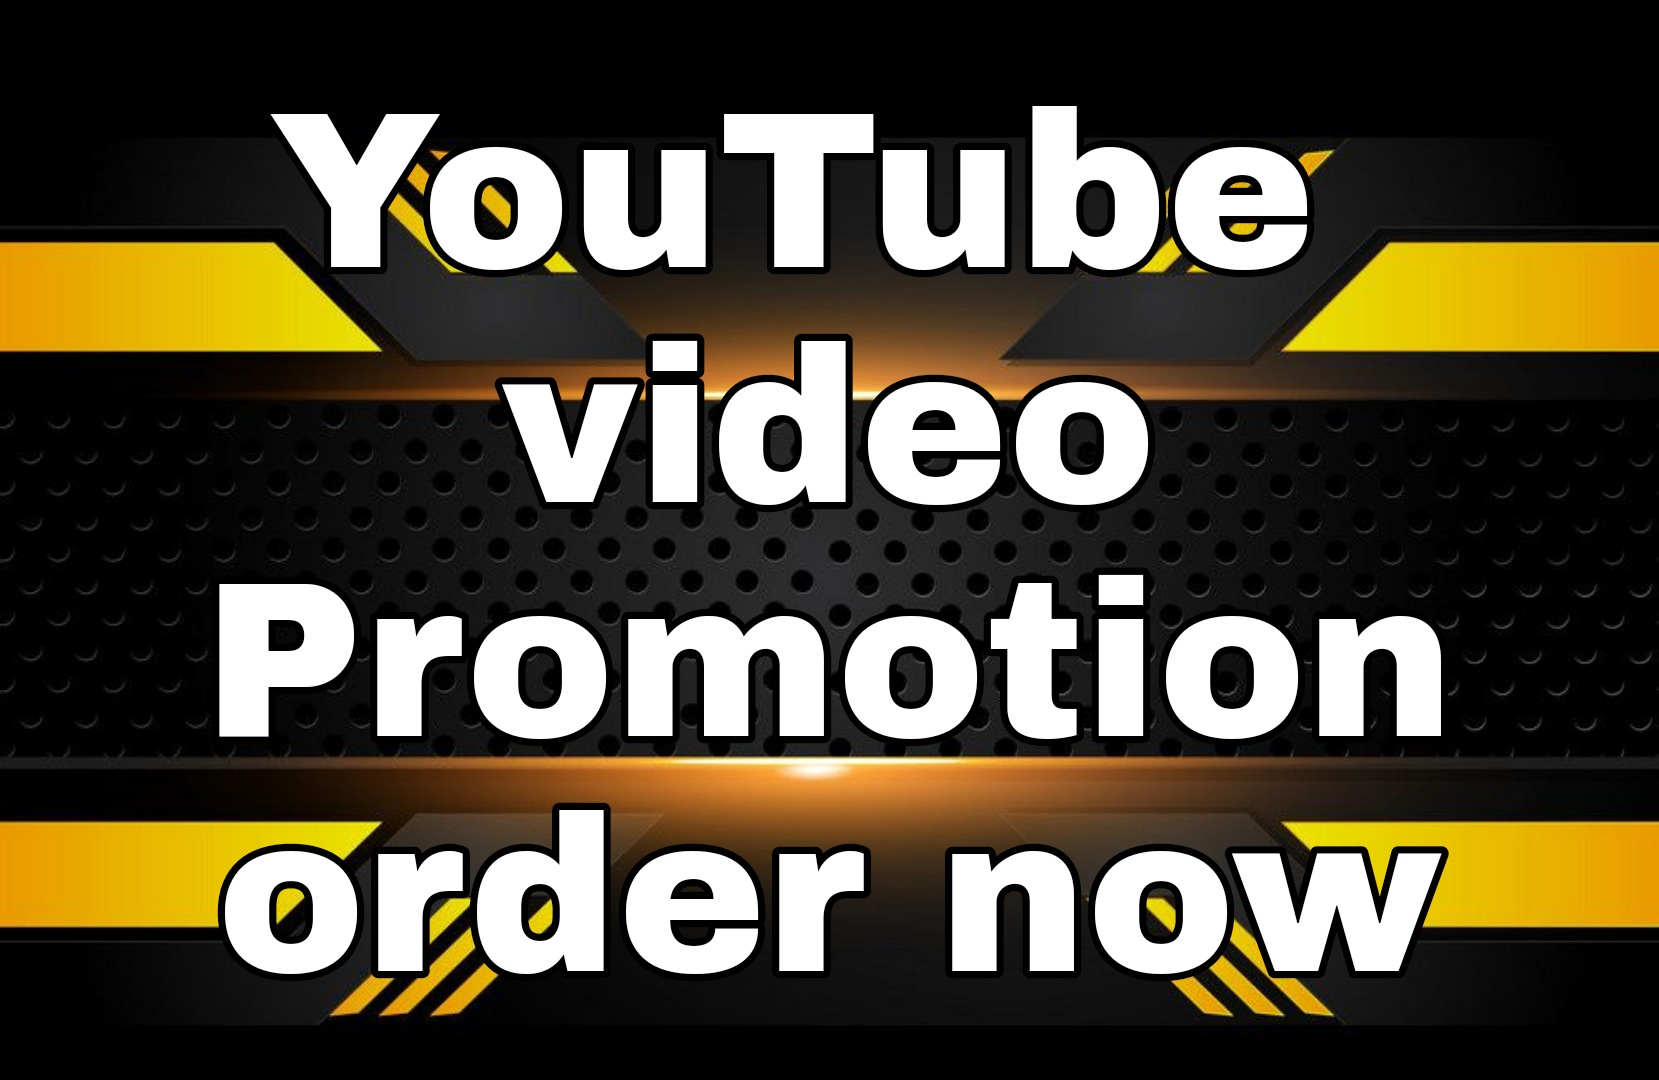 Safe Youtube Video Promotion Best Rates